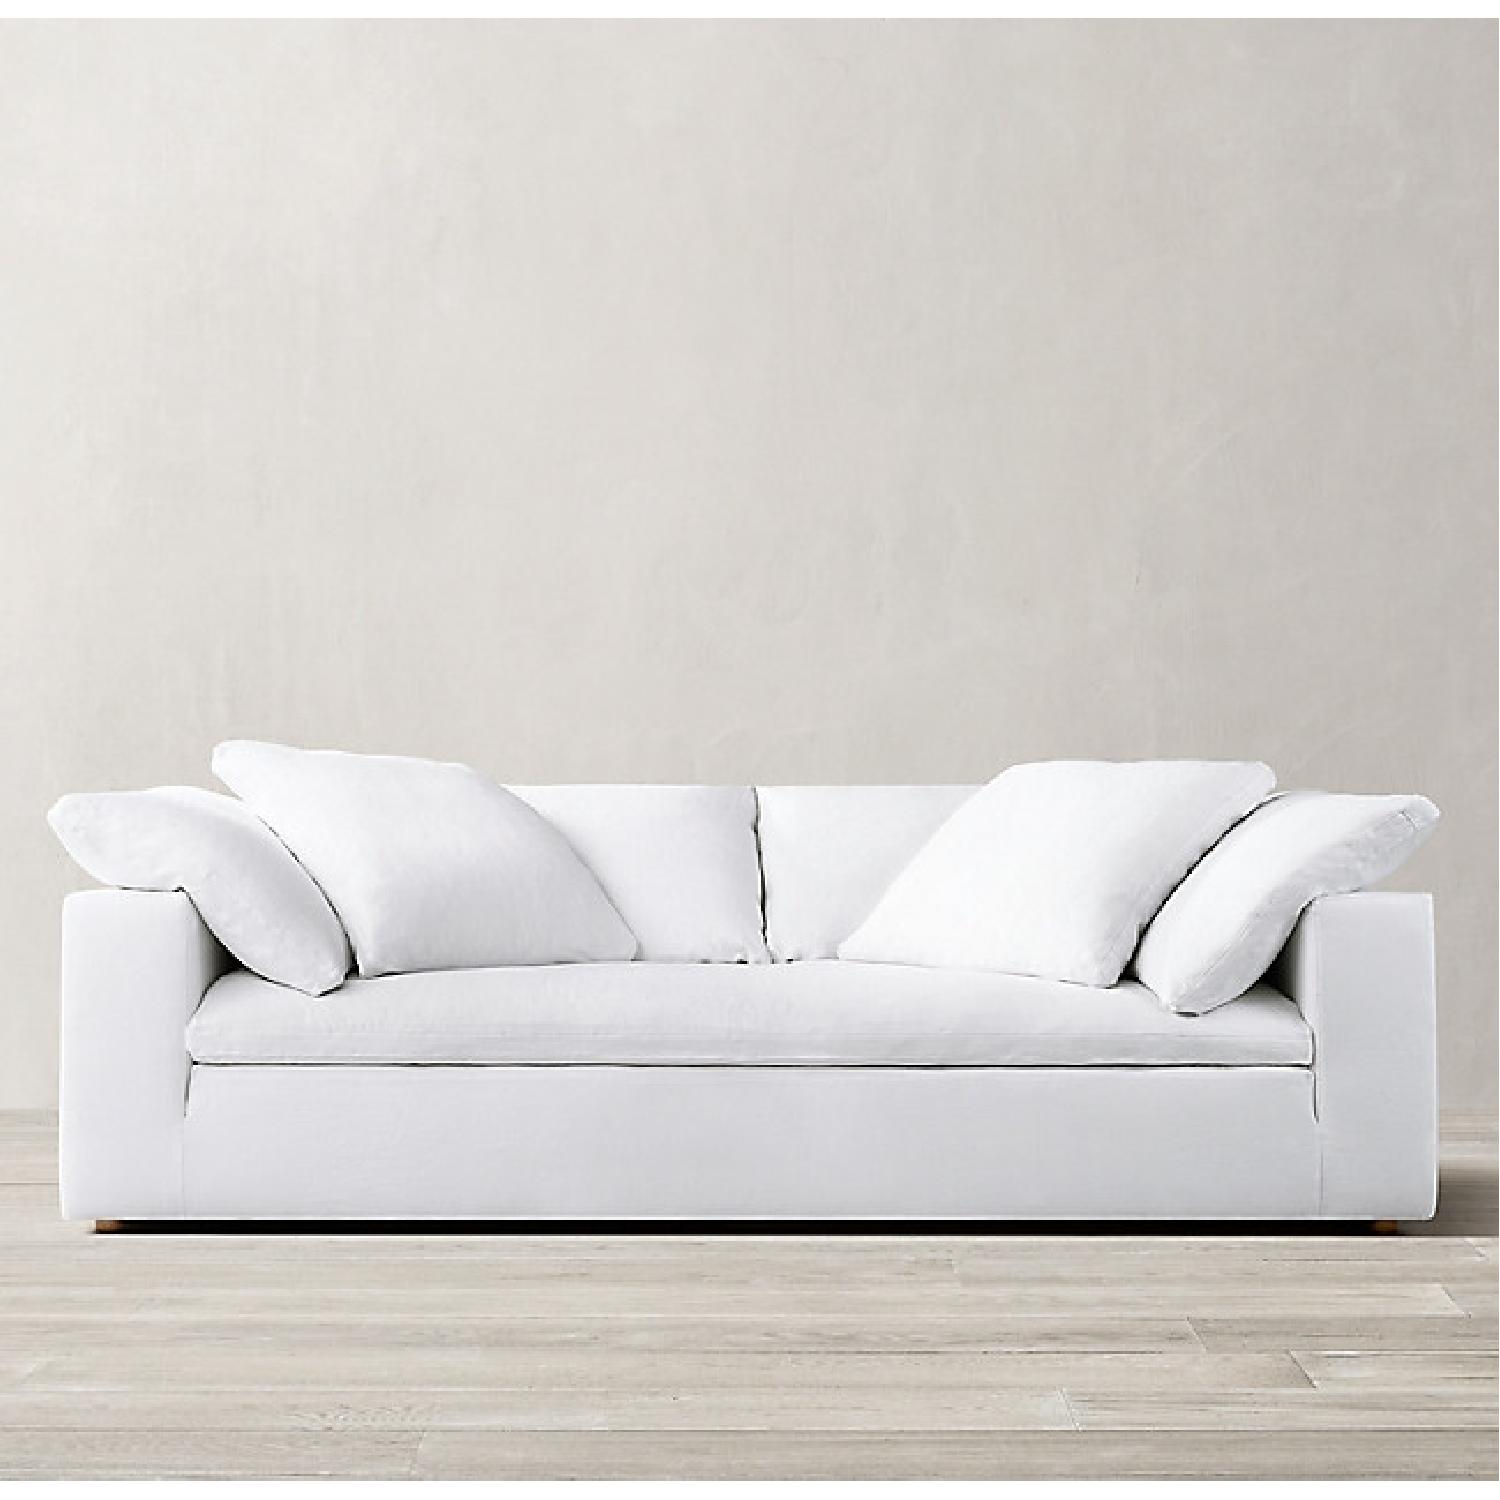 Restoration Hardware White Cloud Couch - image-7